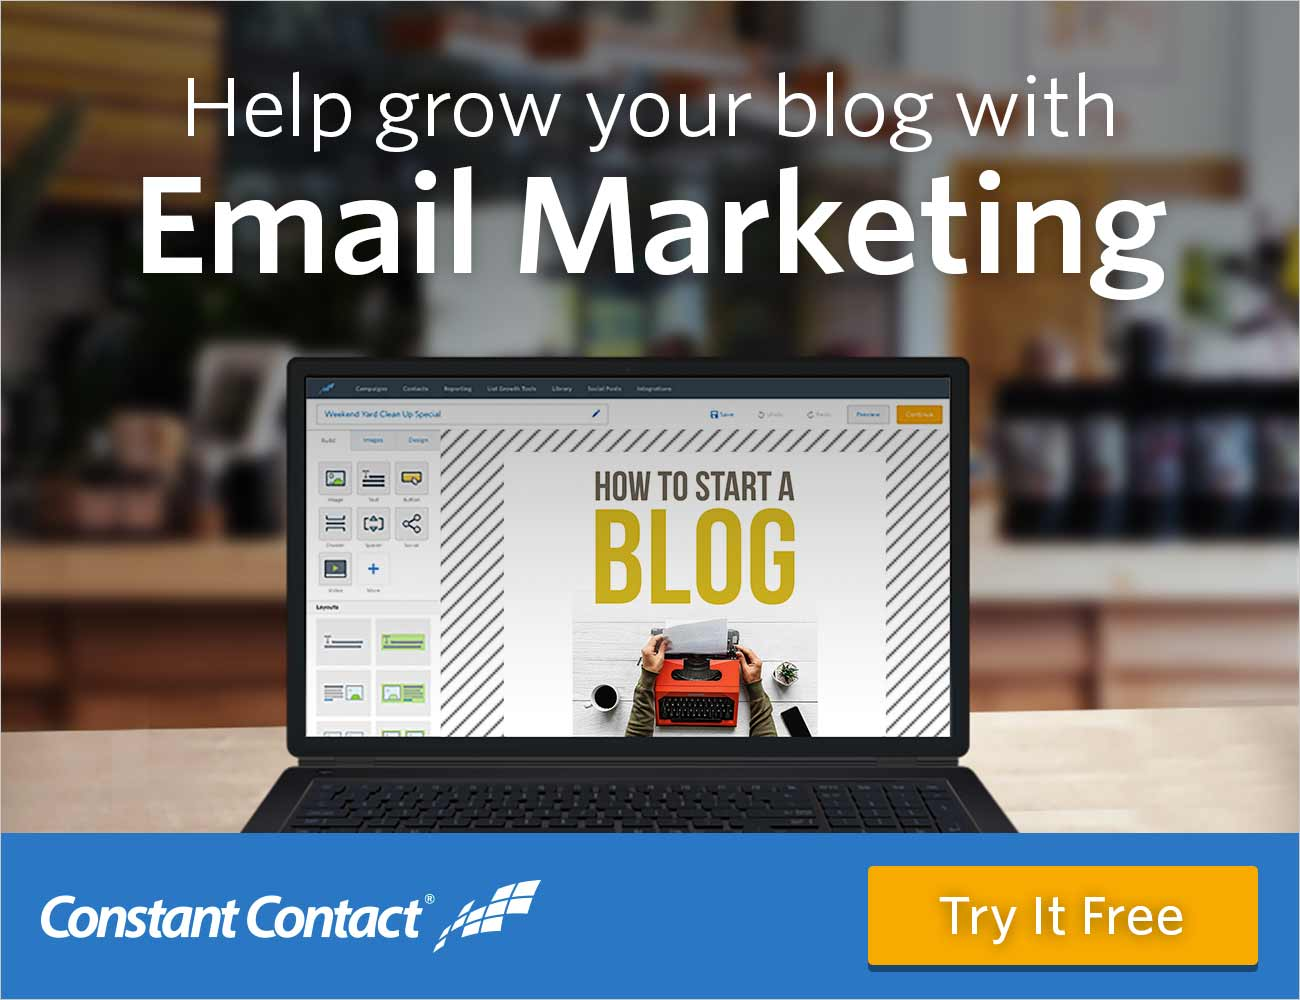 Help grow your blog with Constant Contact email marketing